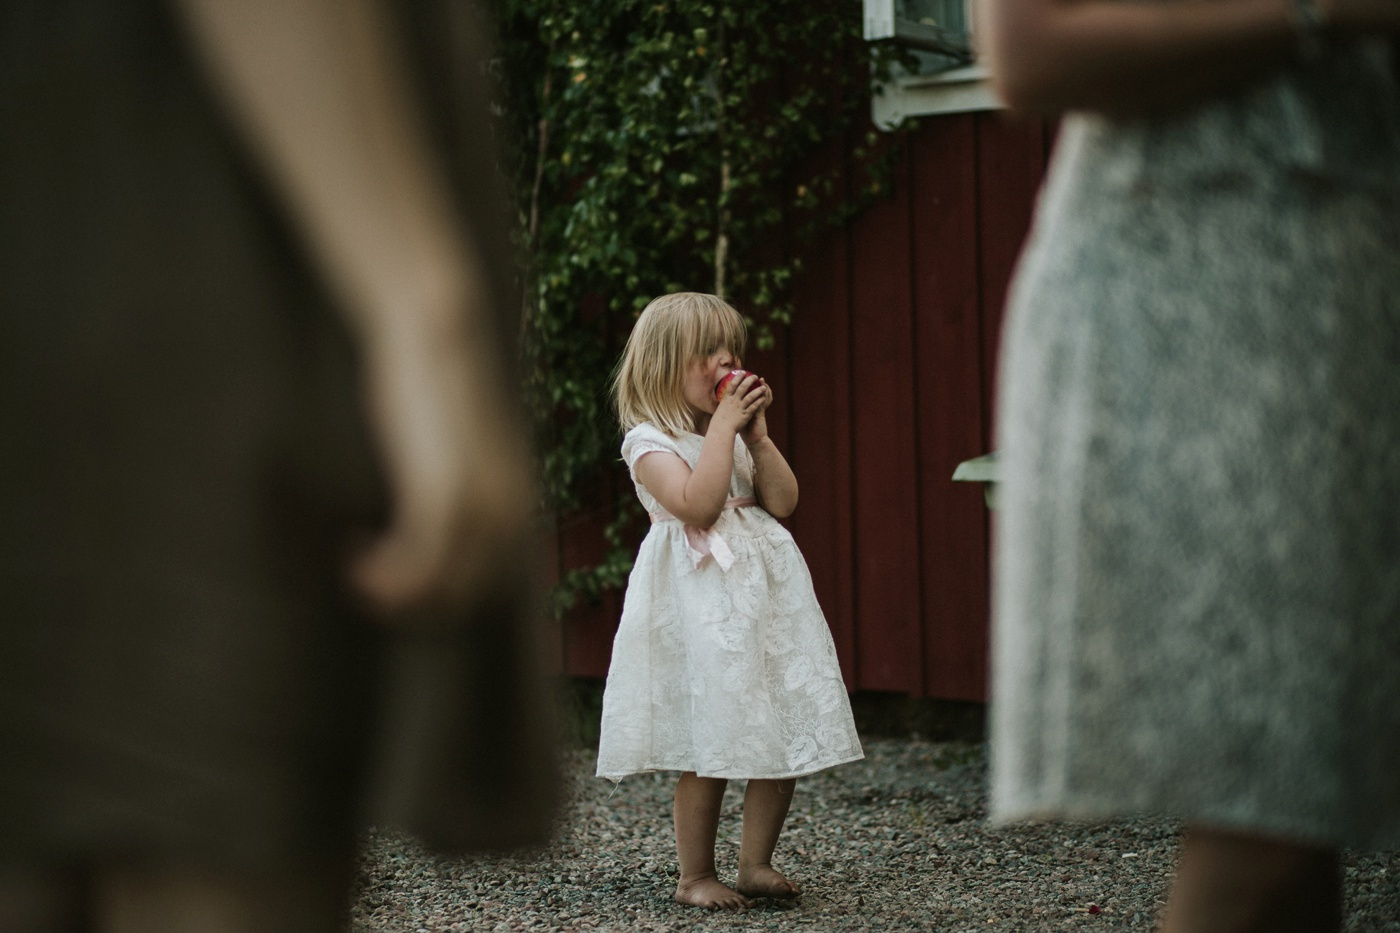 ceciliajoakim_sweden-countryside-summer-wedding_melbourne-fun-quirky-wedding-photography_73